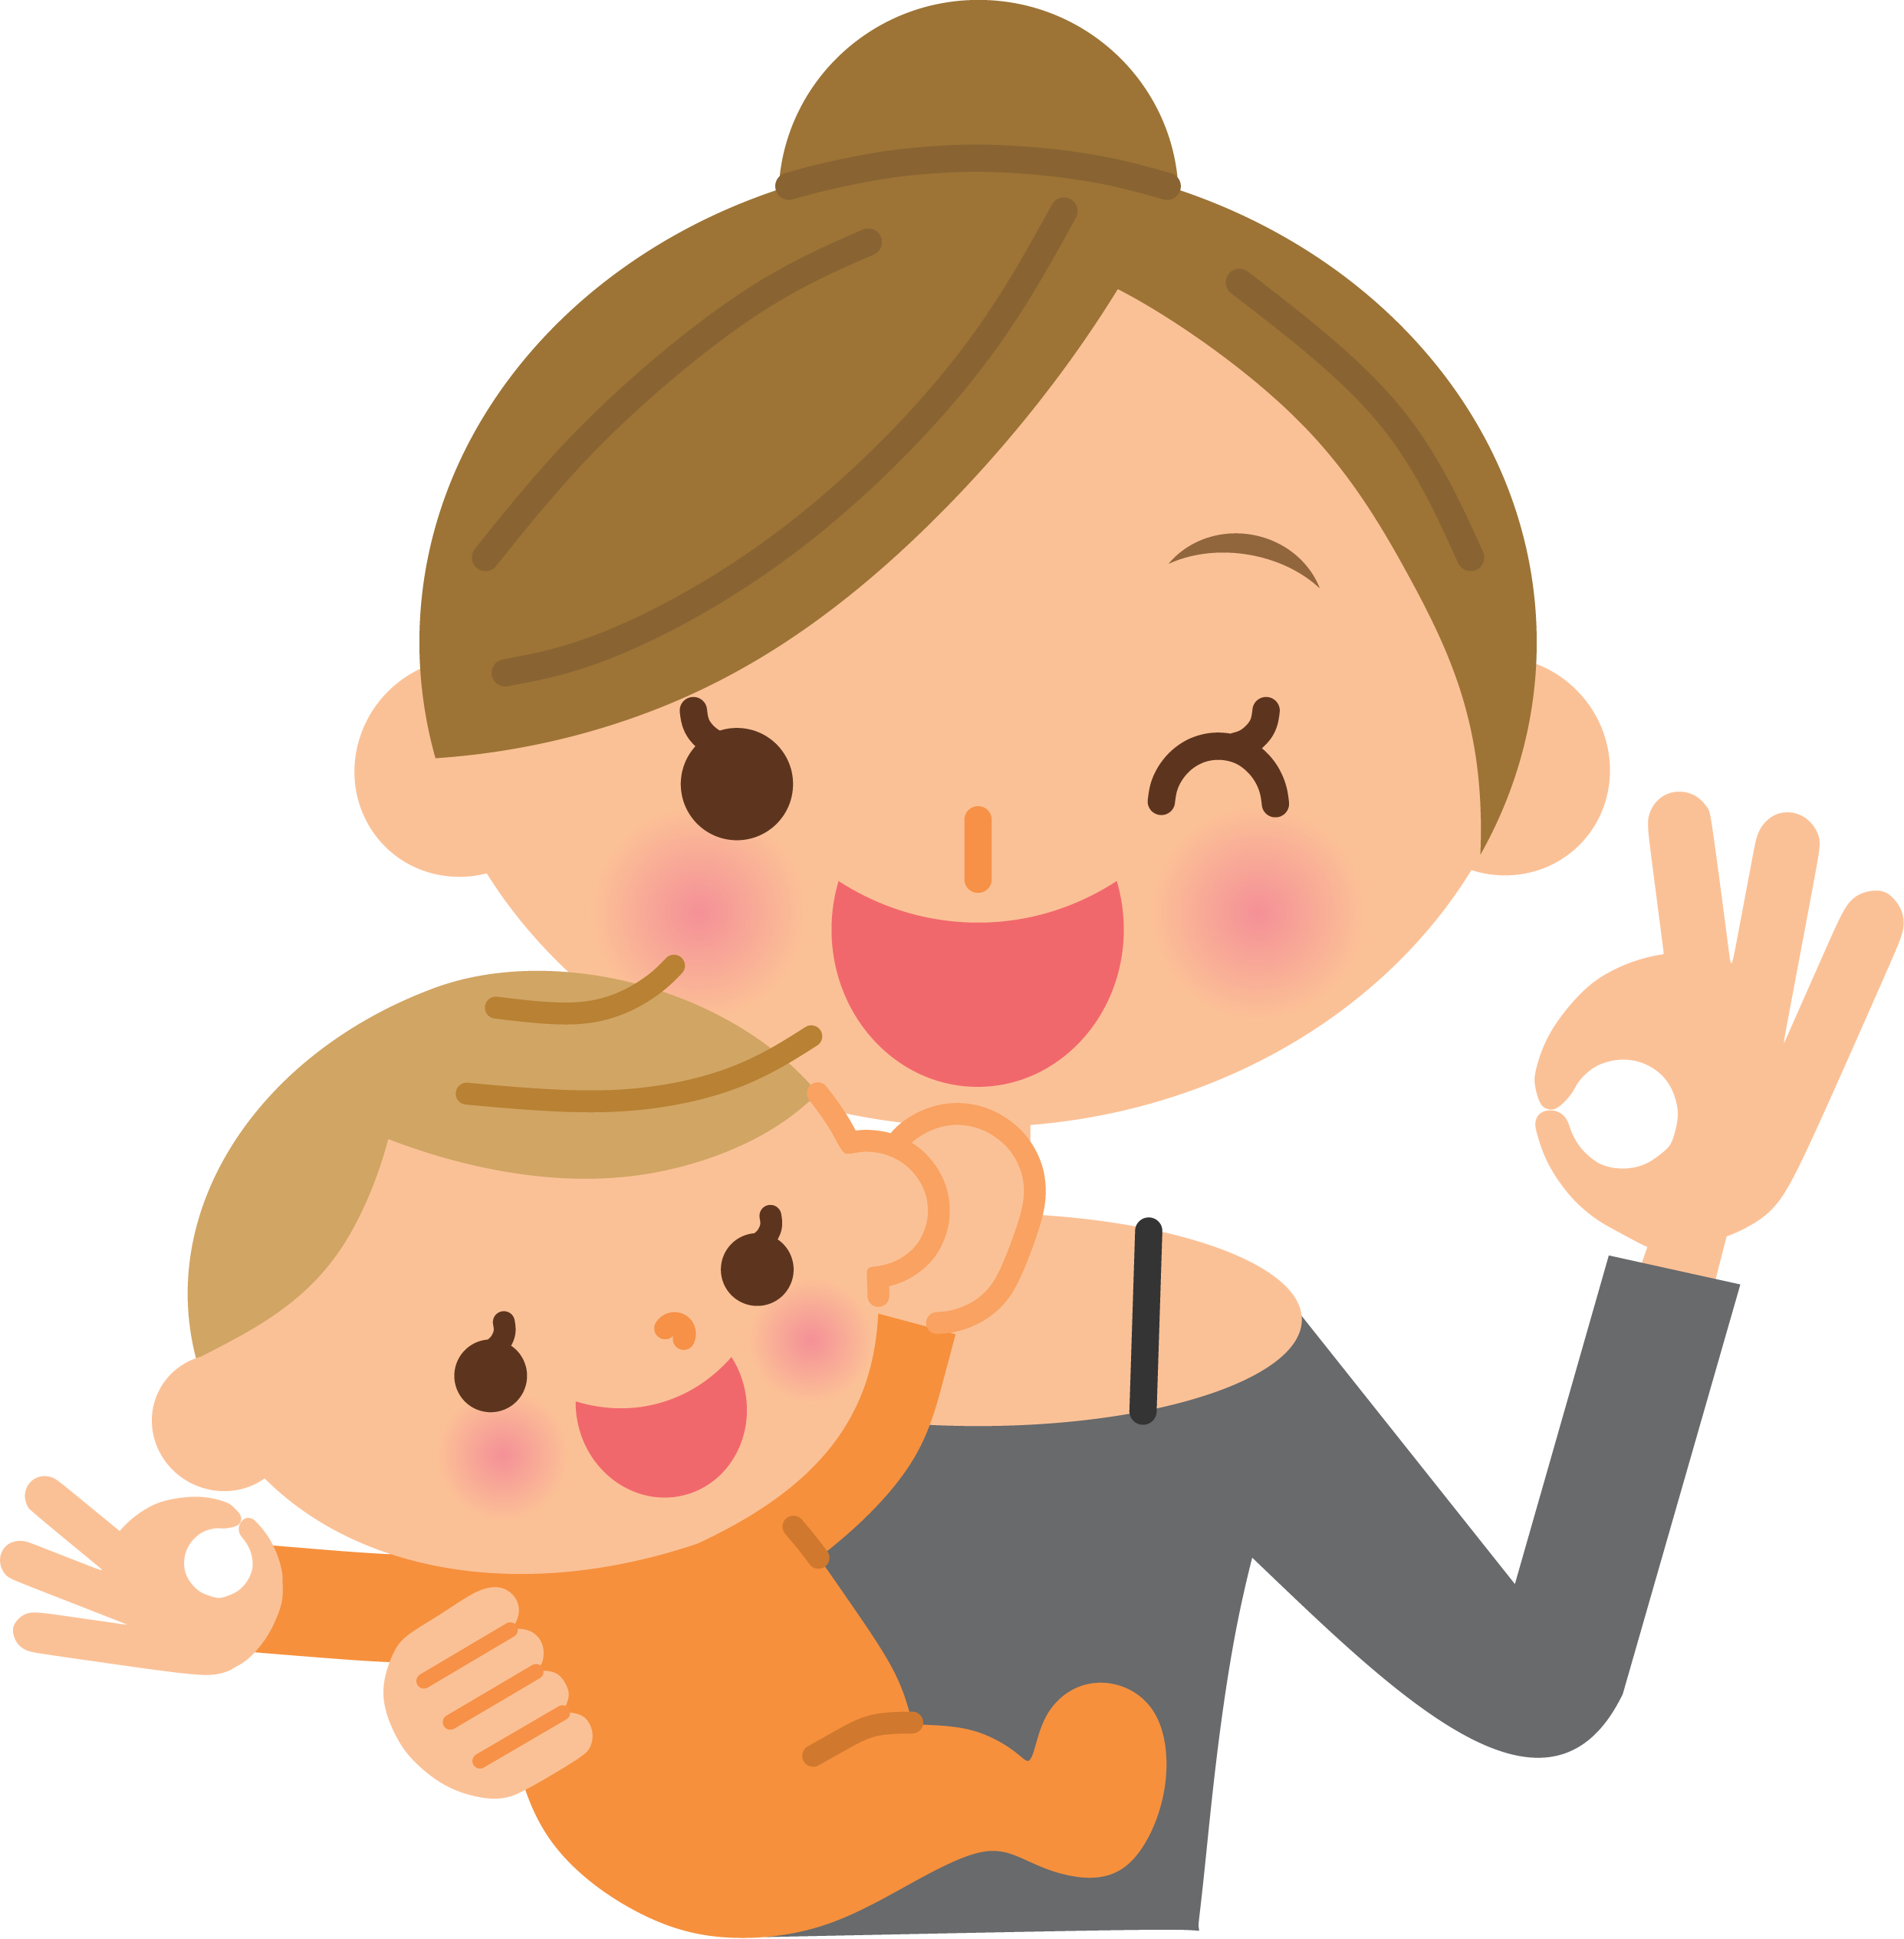 Mother s day images. Mom png picture stock